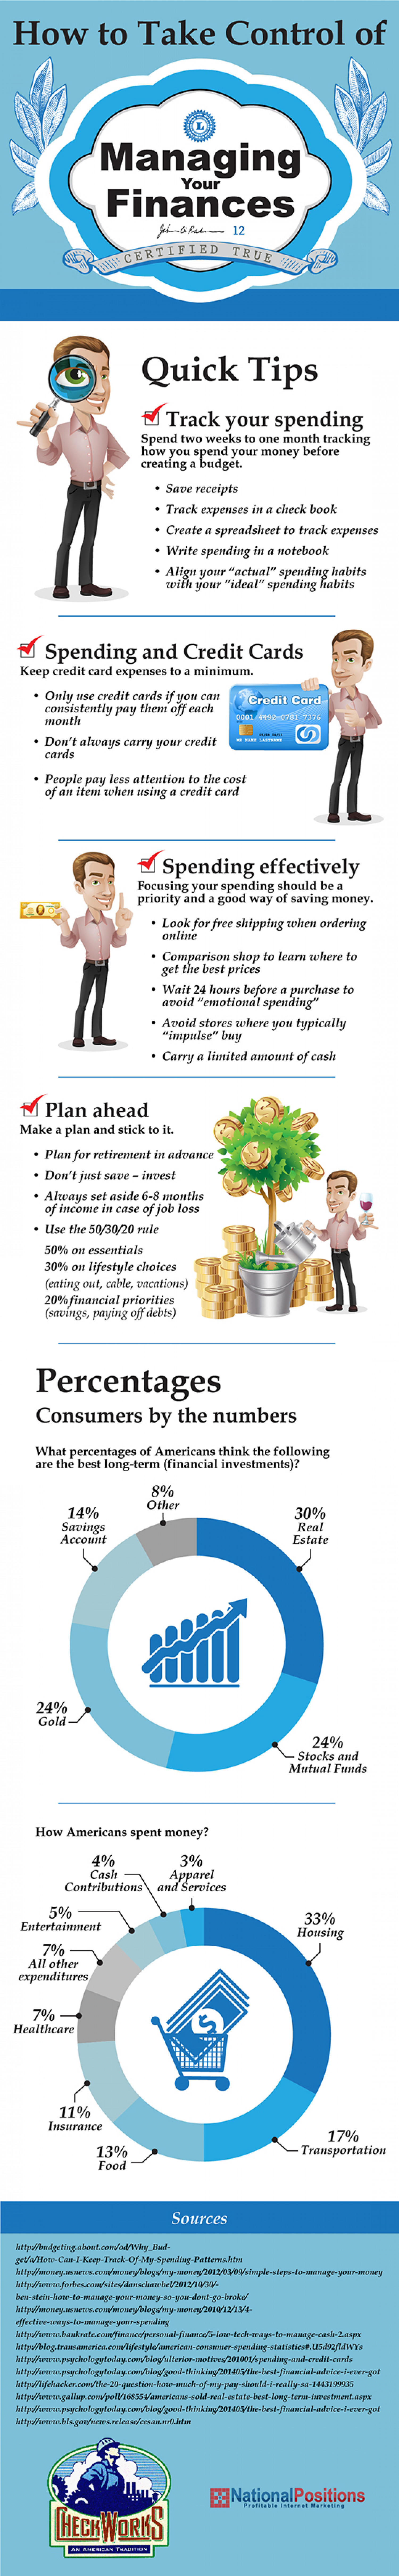 How to Take Control of Managing Your Finances Infographic